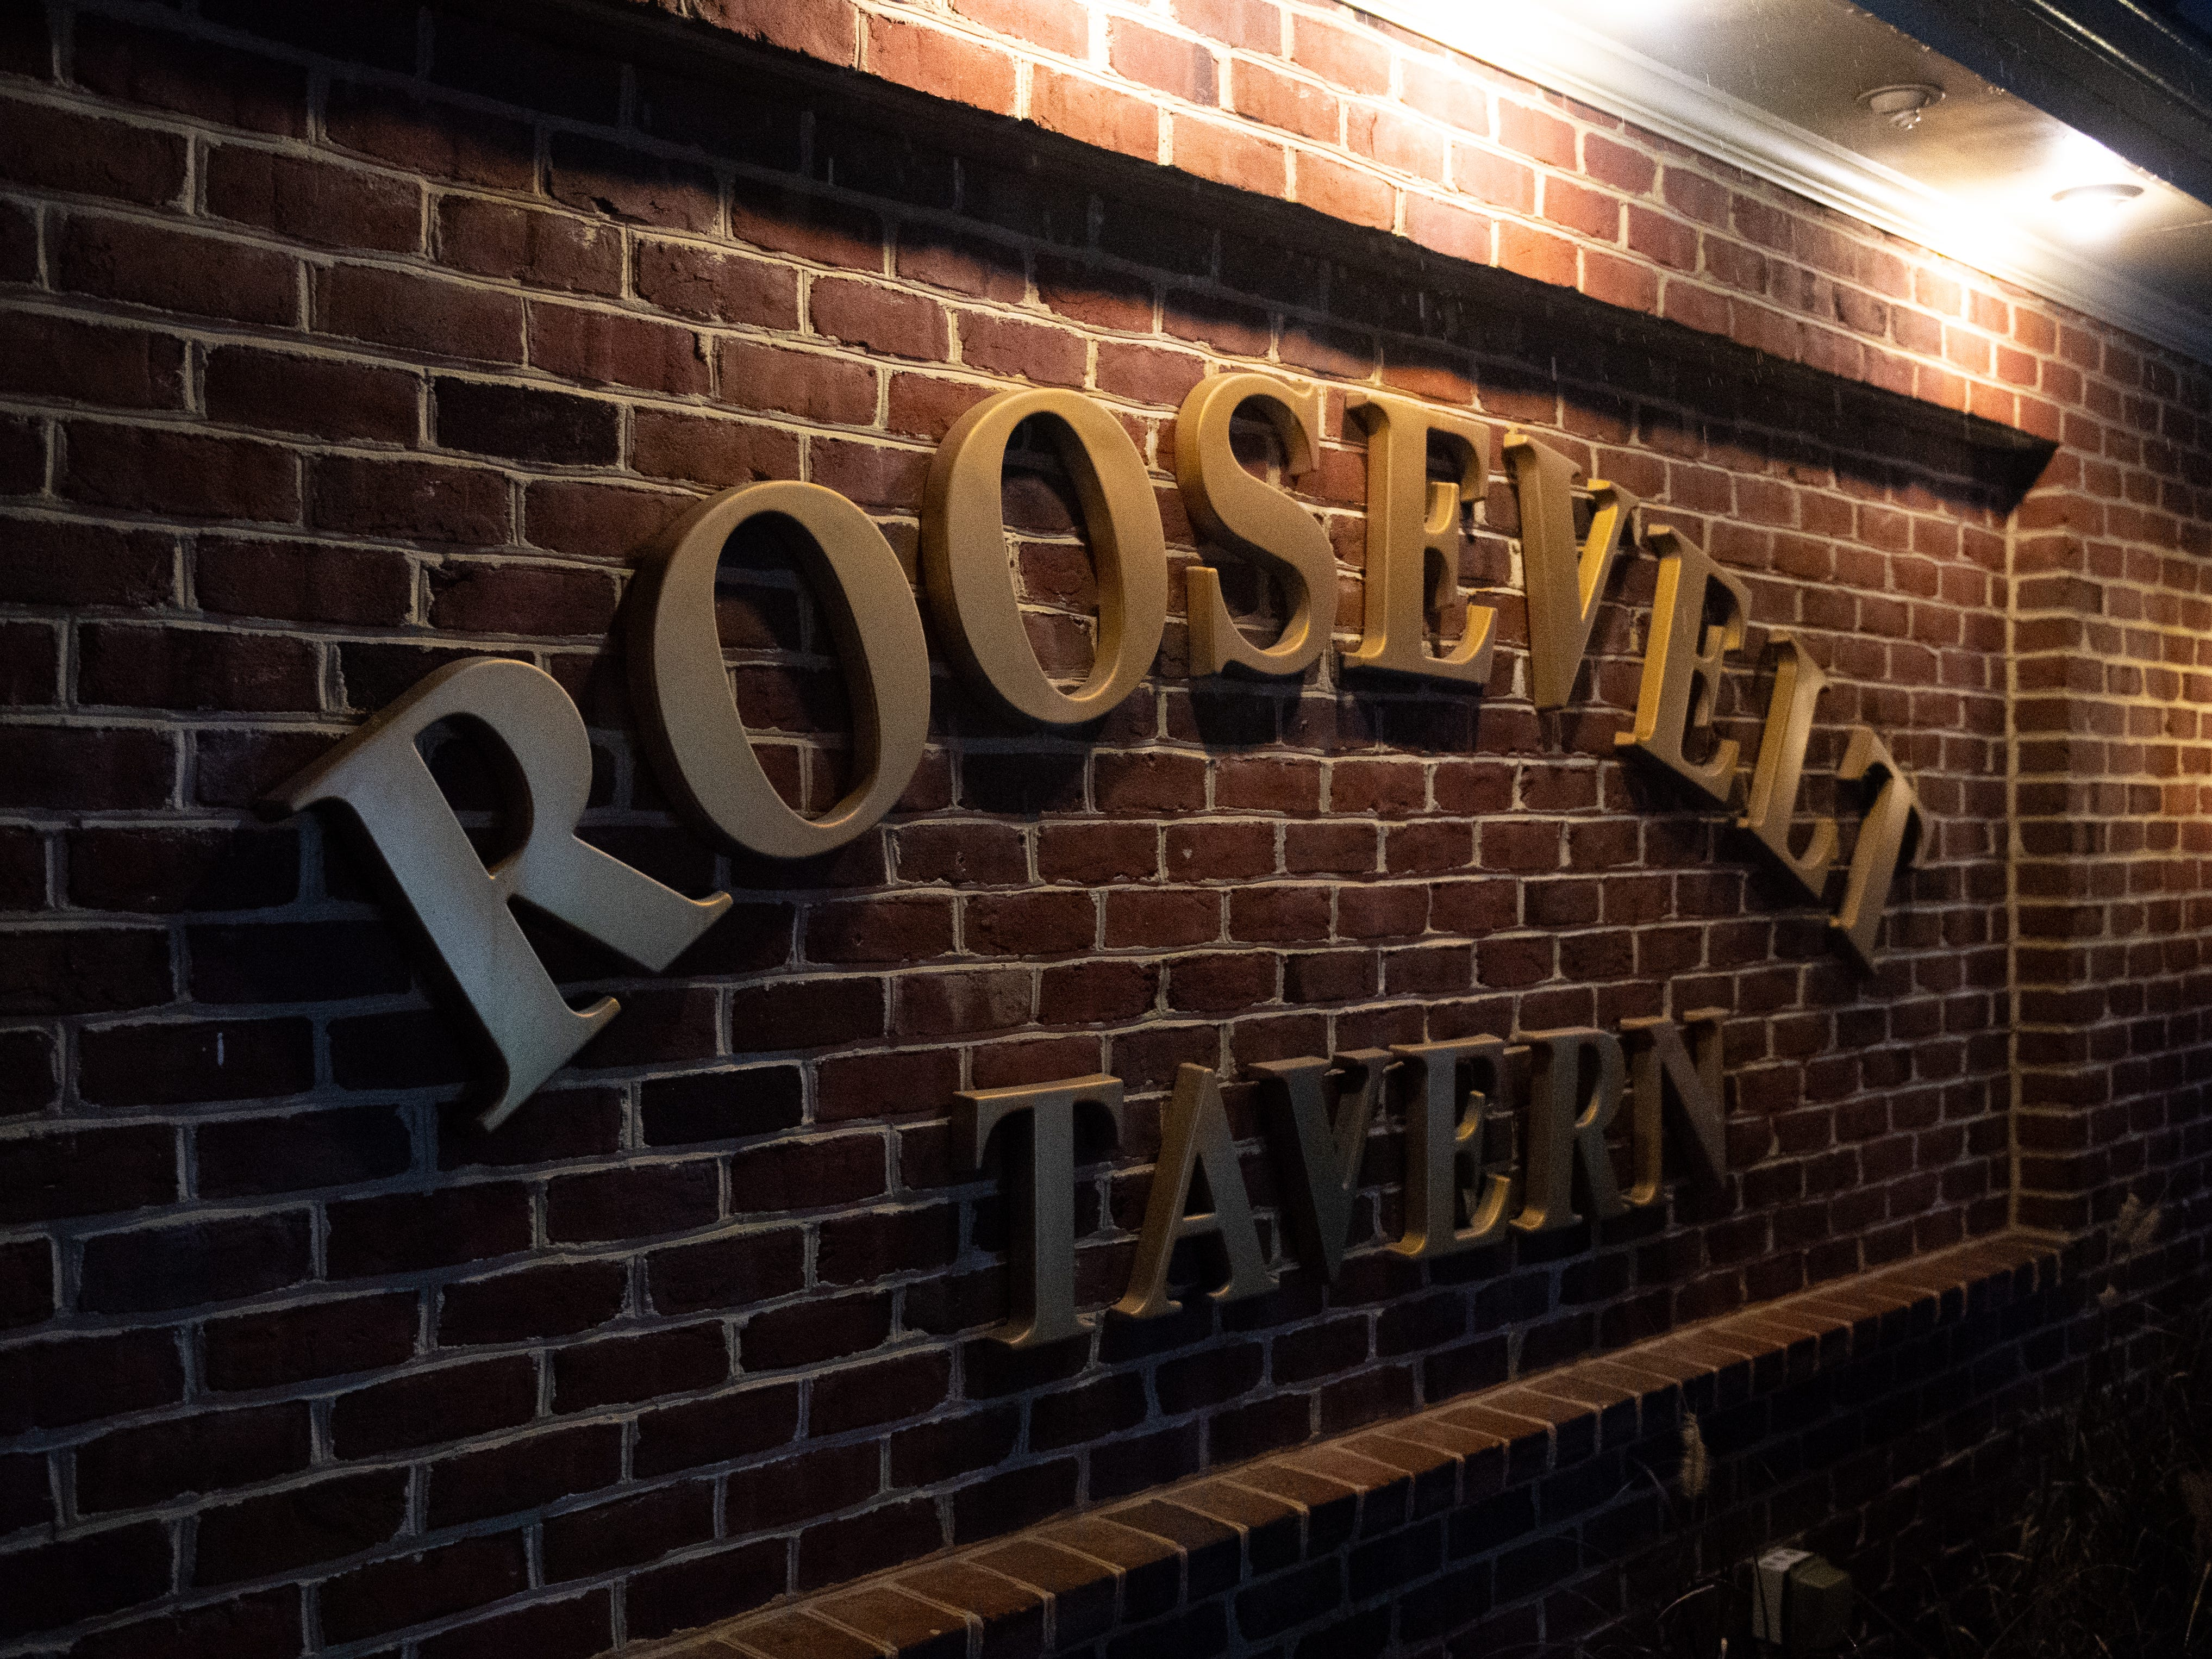 Roosevelt Tavern is gearing up for one of its busiest days of the year, Thanksgiving. The restaurant typically serves around 50 to 60 guests for weekend dinner service, but during the holiday they'll push up to 300 reservations.